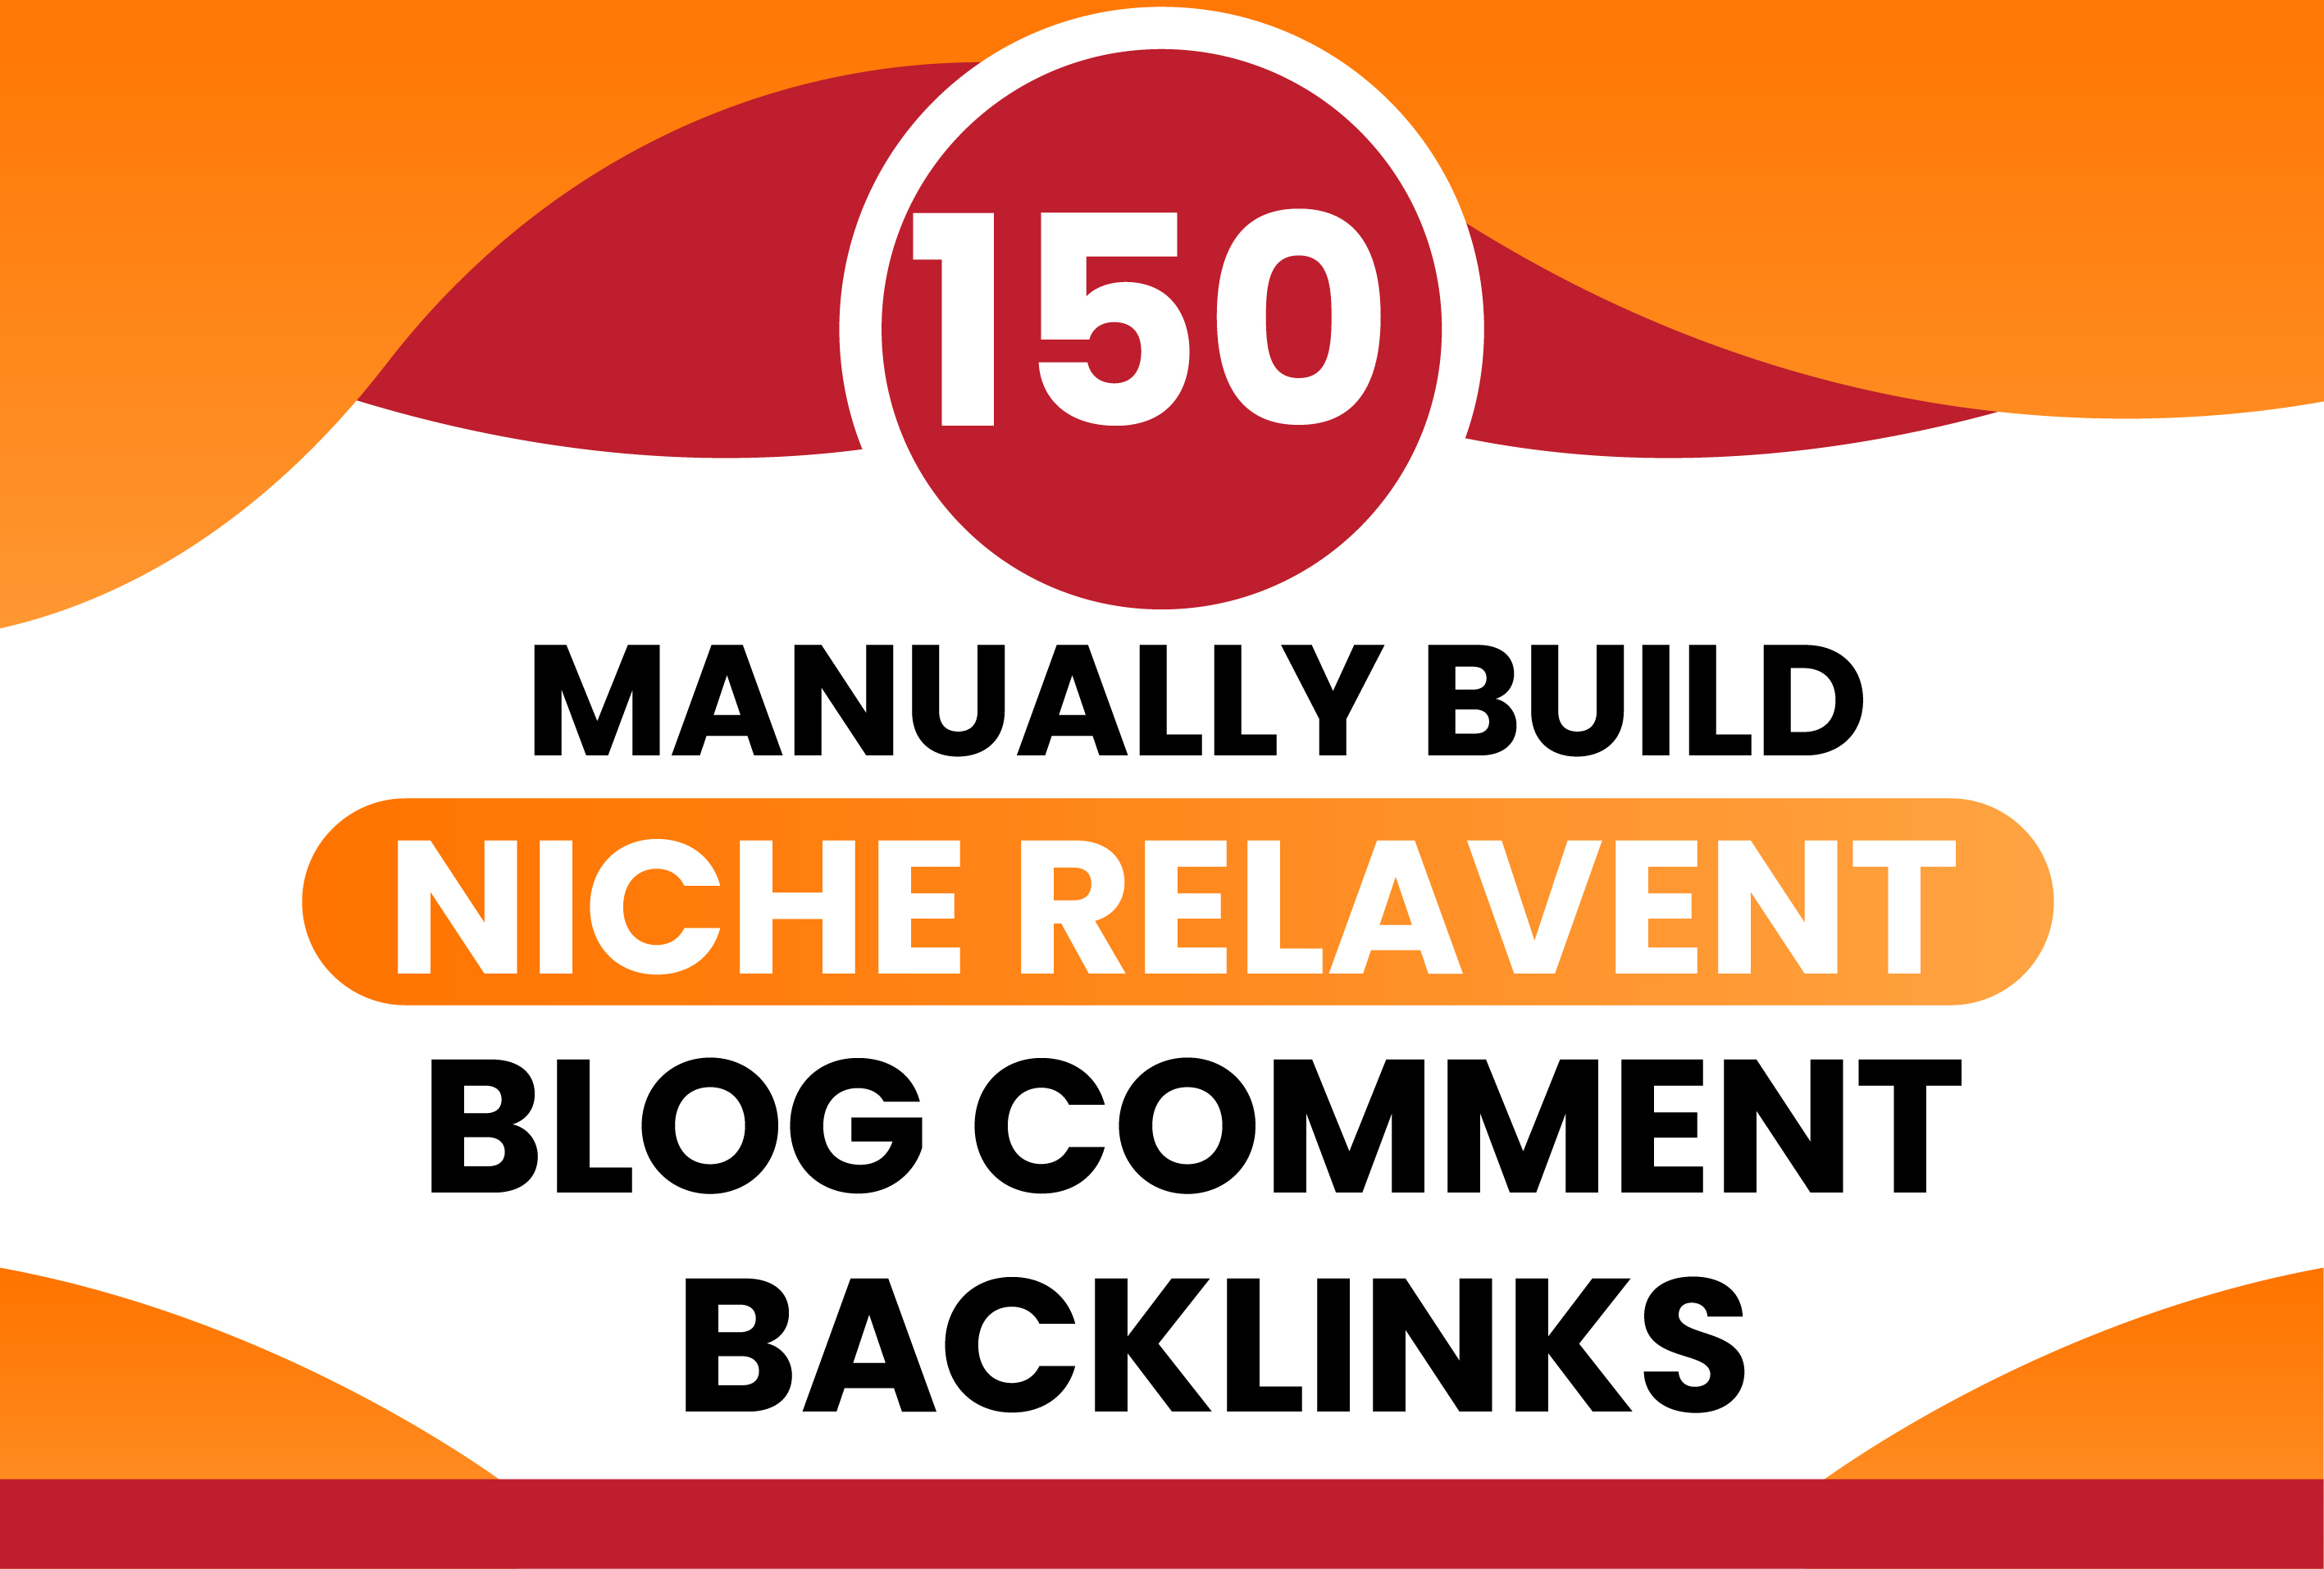 150 Manually Build High Quality Niche Relavent Blog Comments Backlinks